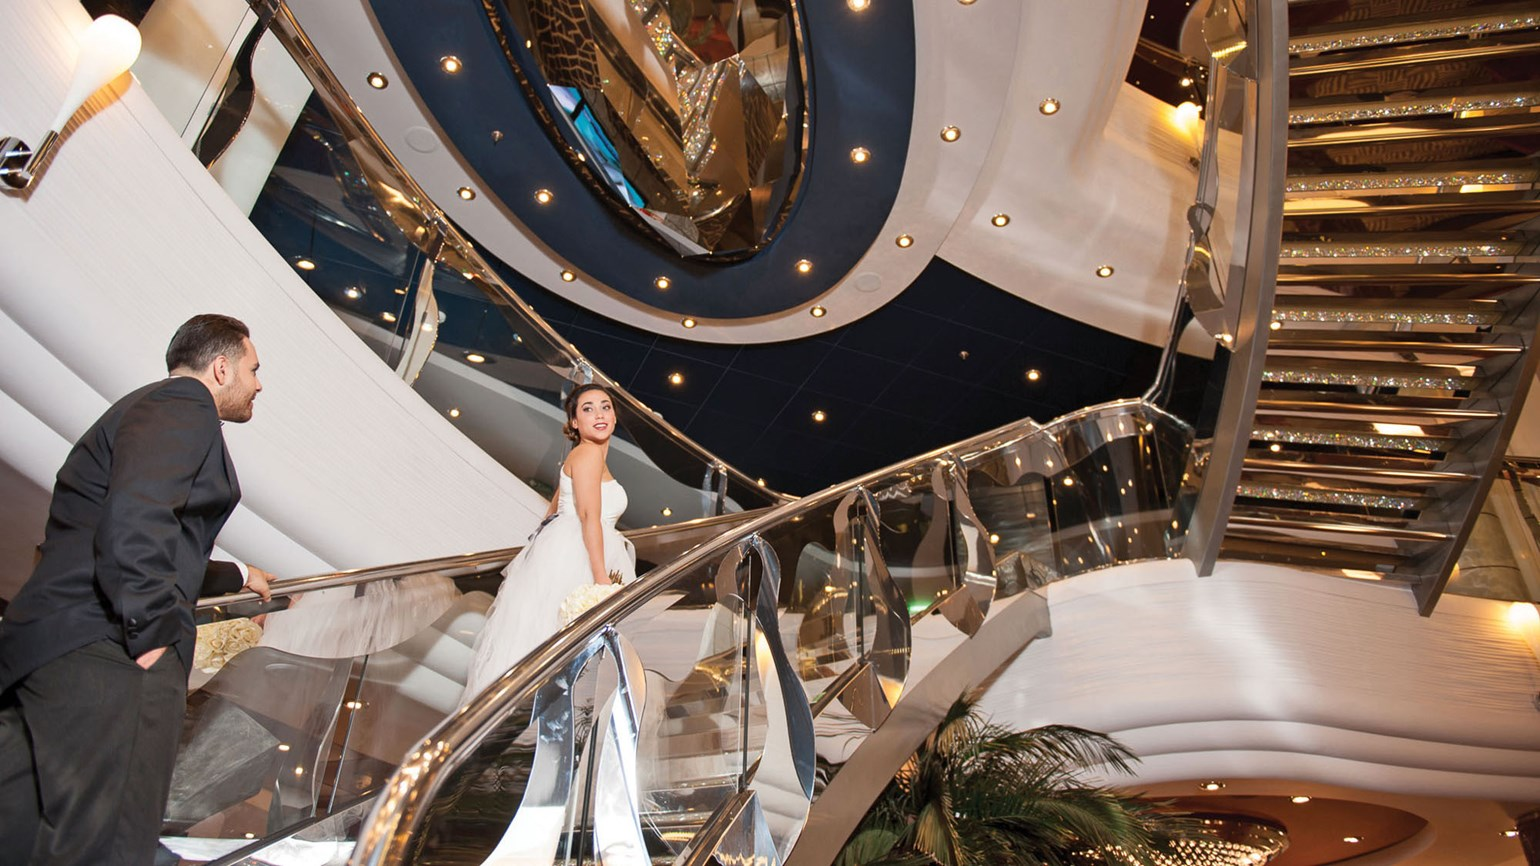 For cruise lines, weddings mean varying locales, regulations